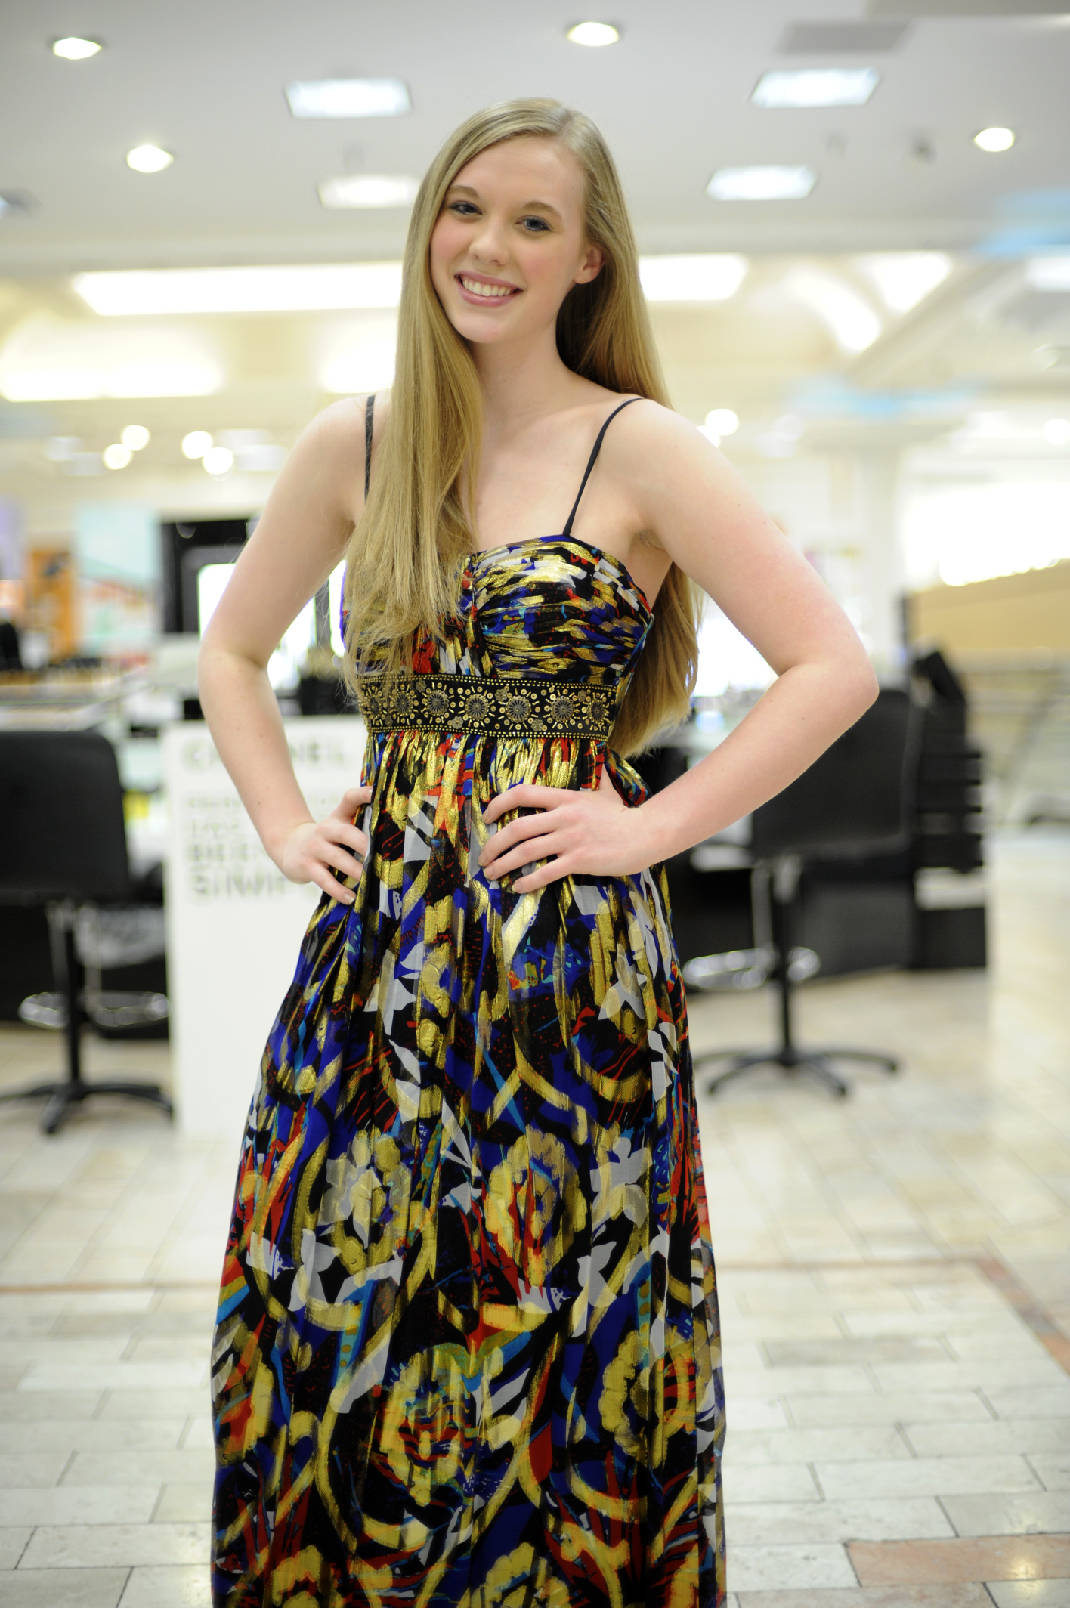 Red-carpet styles influence 2012 prom dress trends | Times Free Press